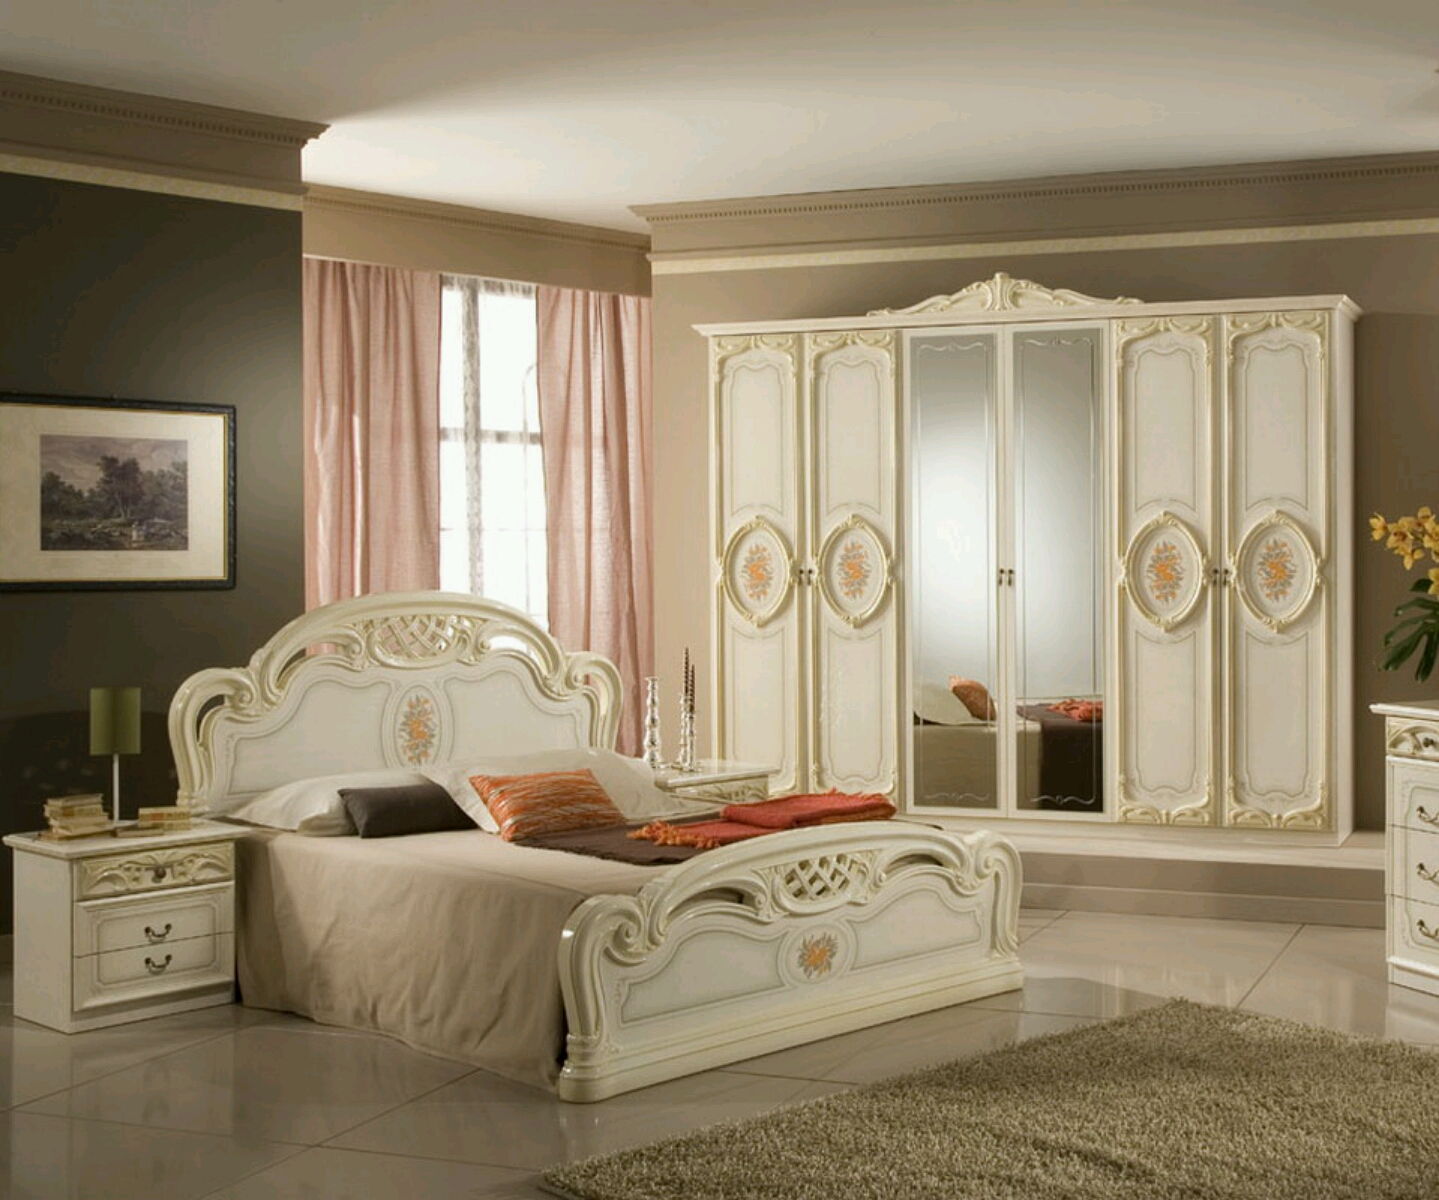 Modern luxury bedroom furniture designs ideas